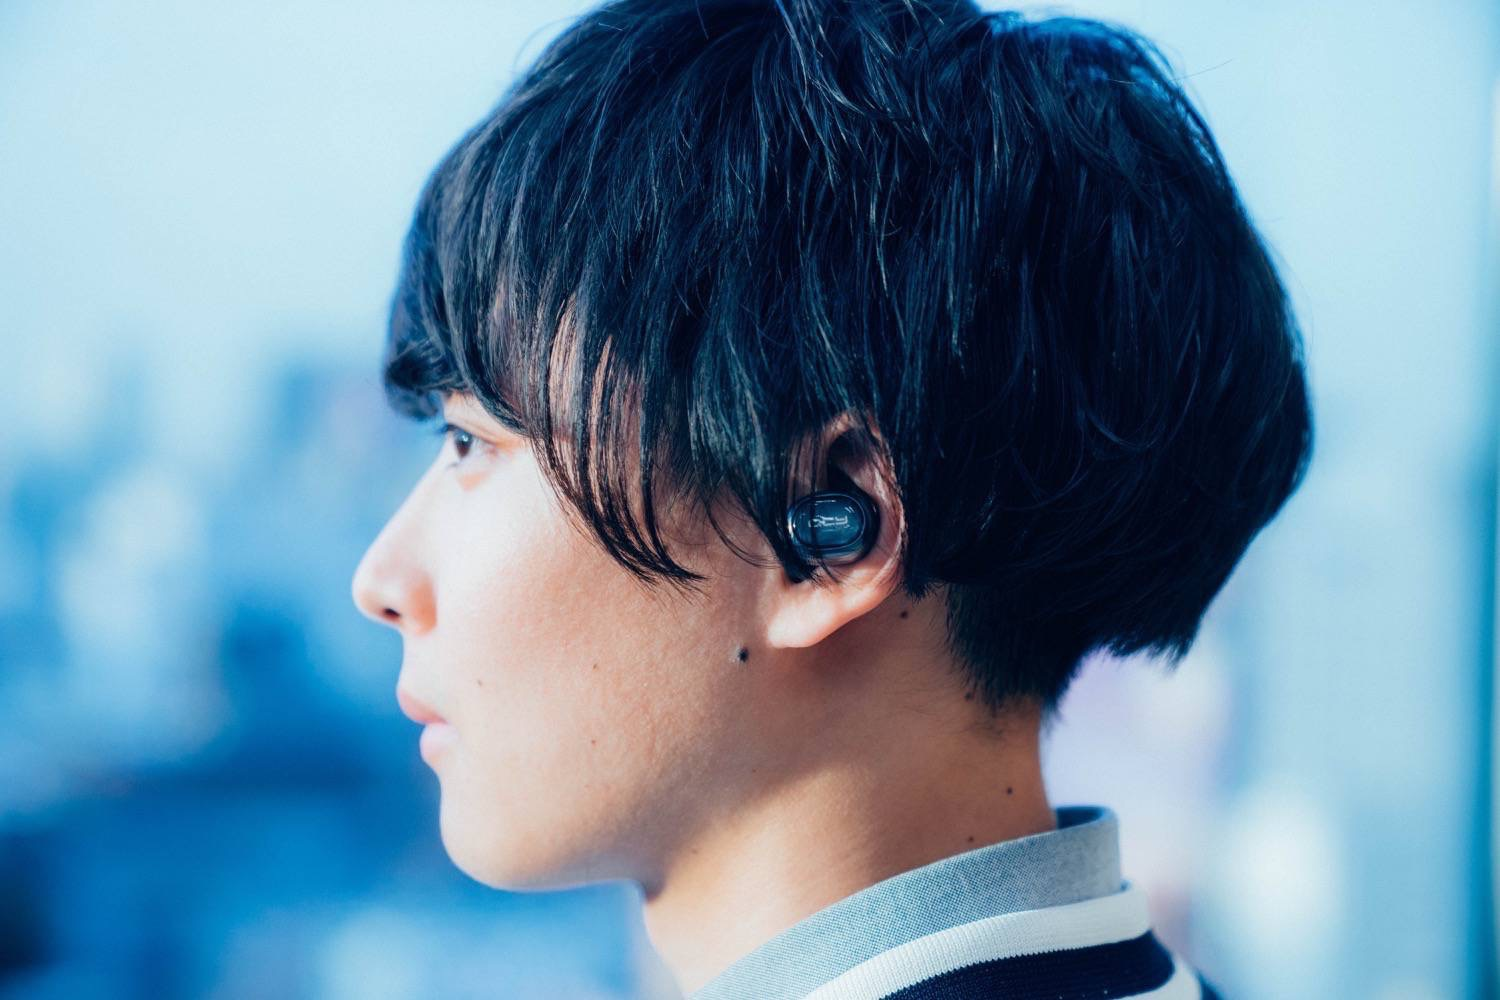 Qcy earphone 8